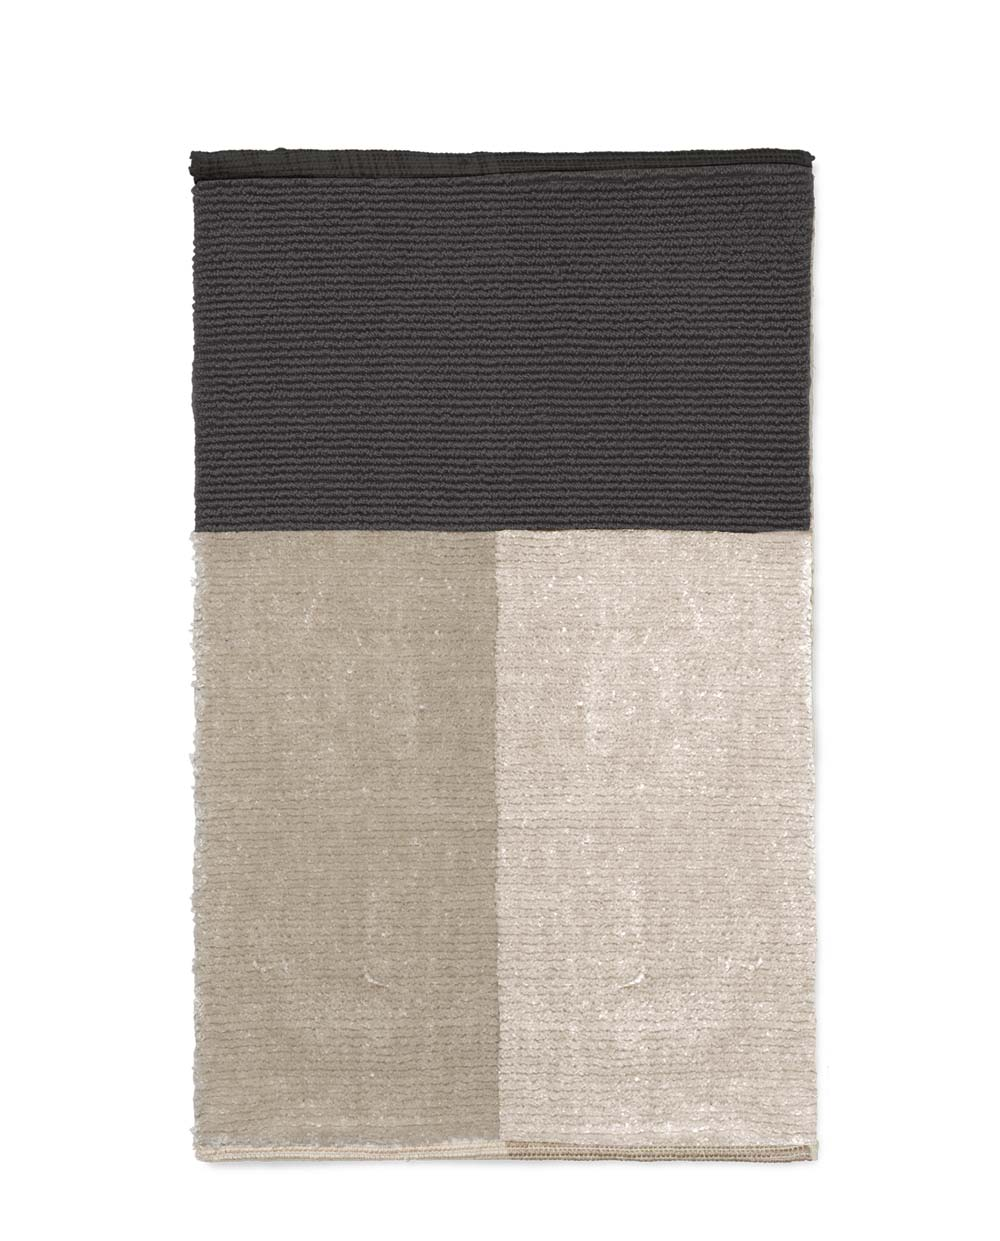 ferm Living pile bathroom mat 100601103 01